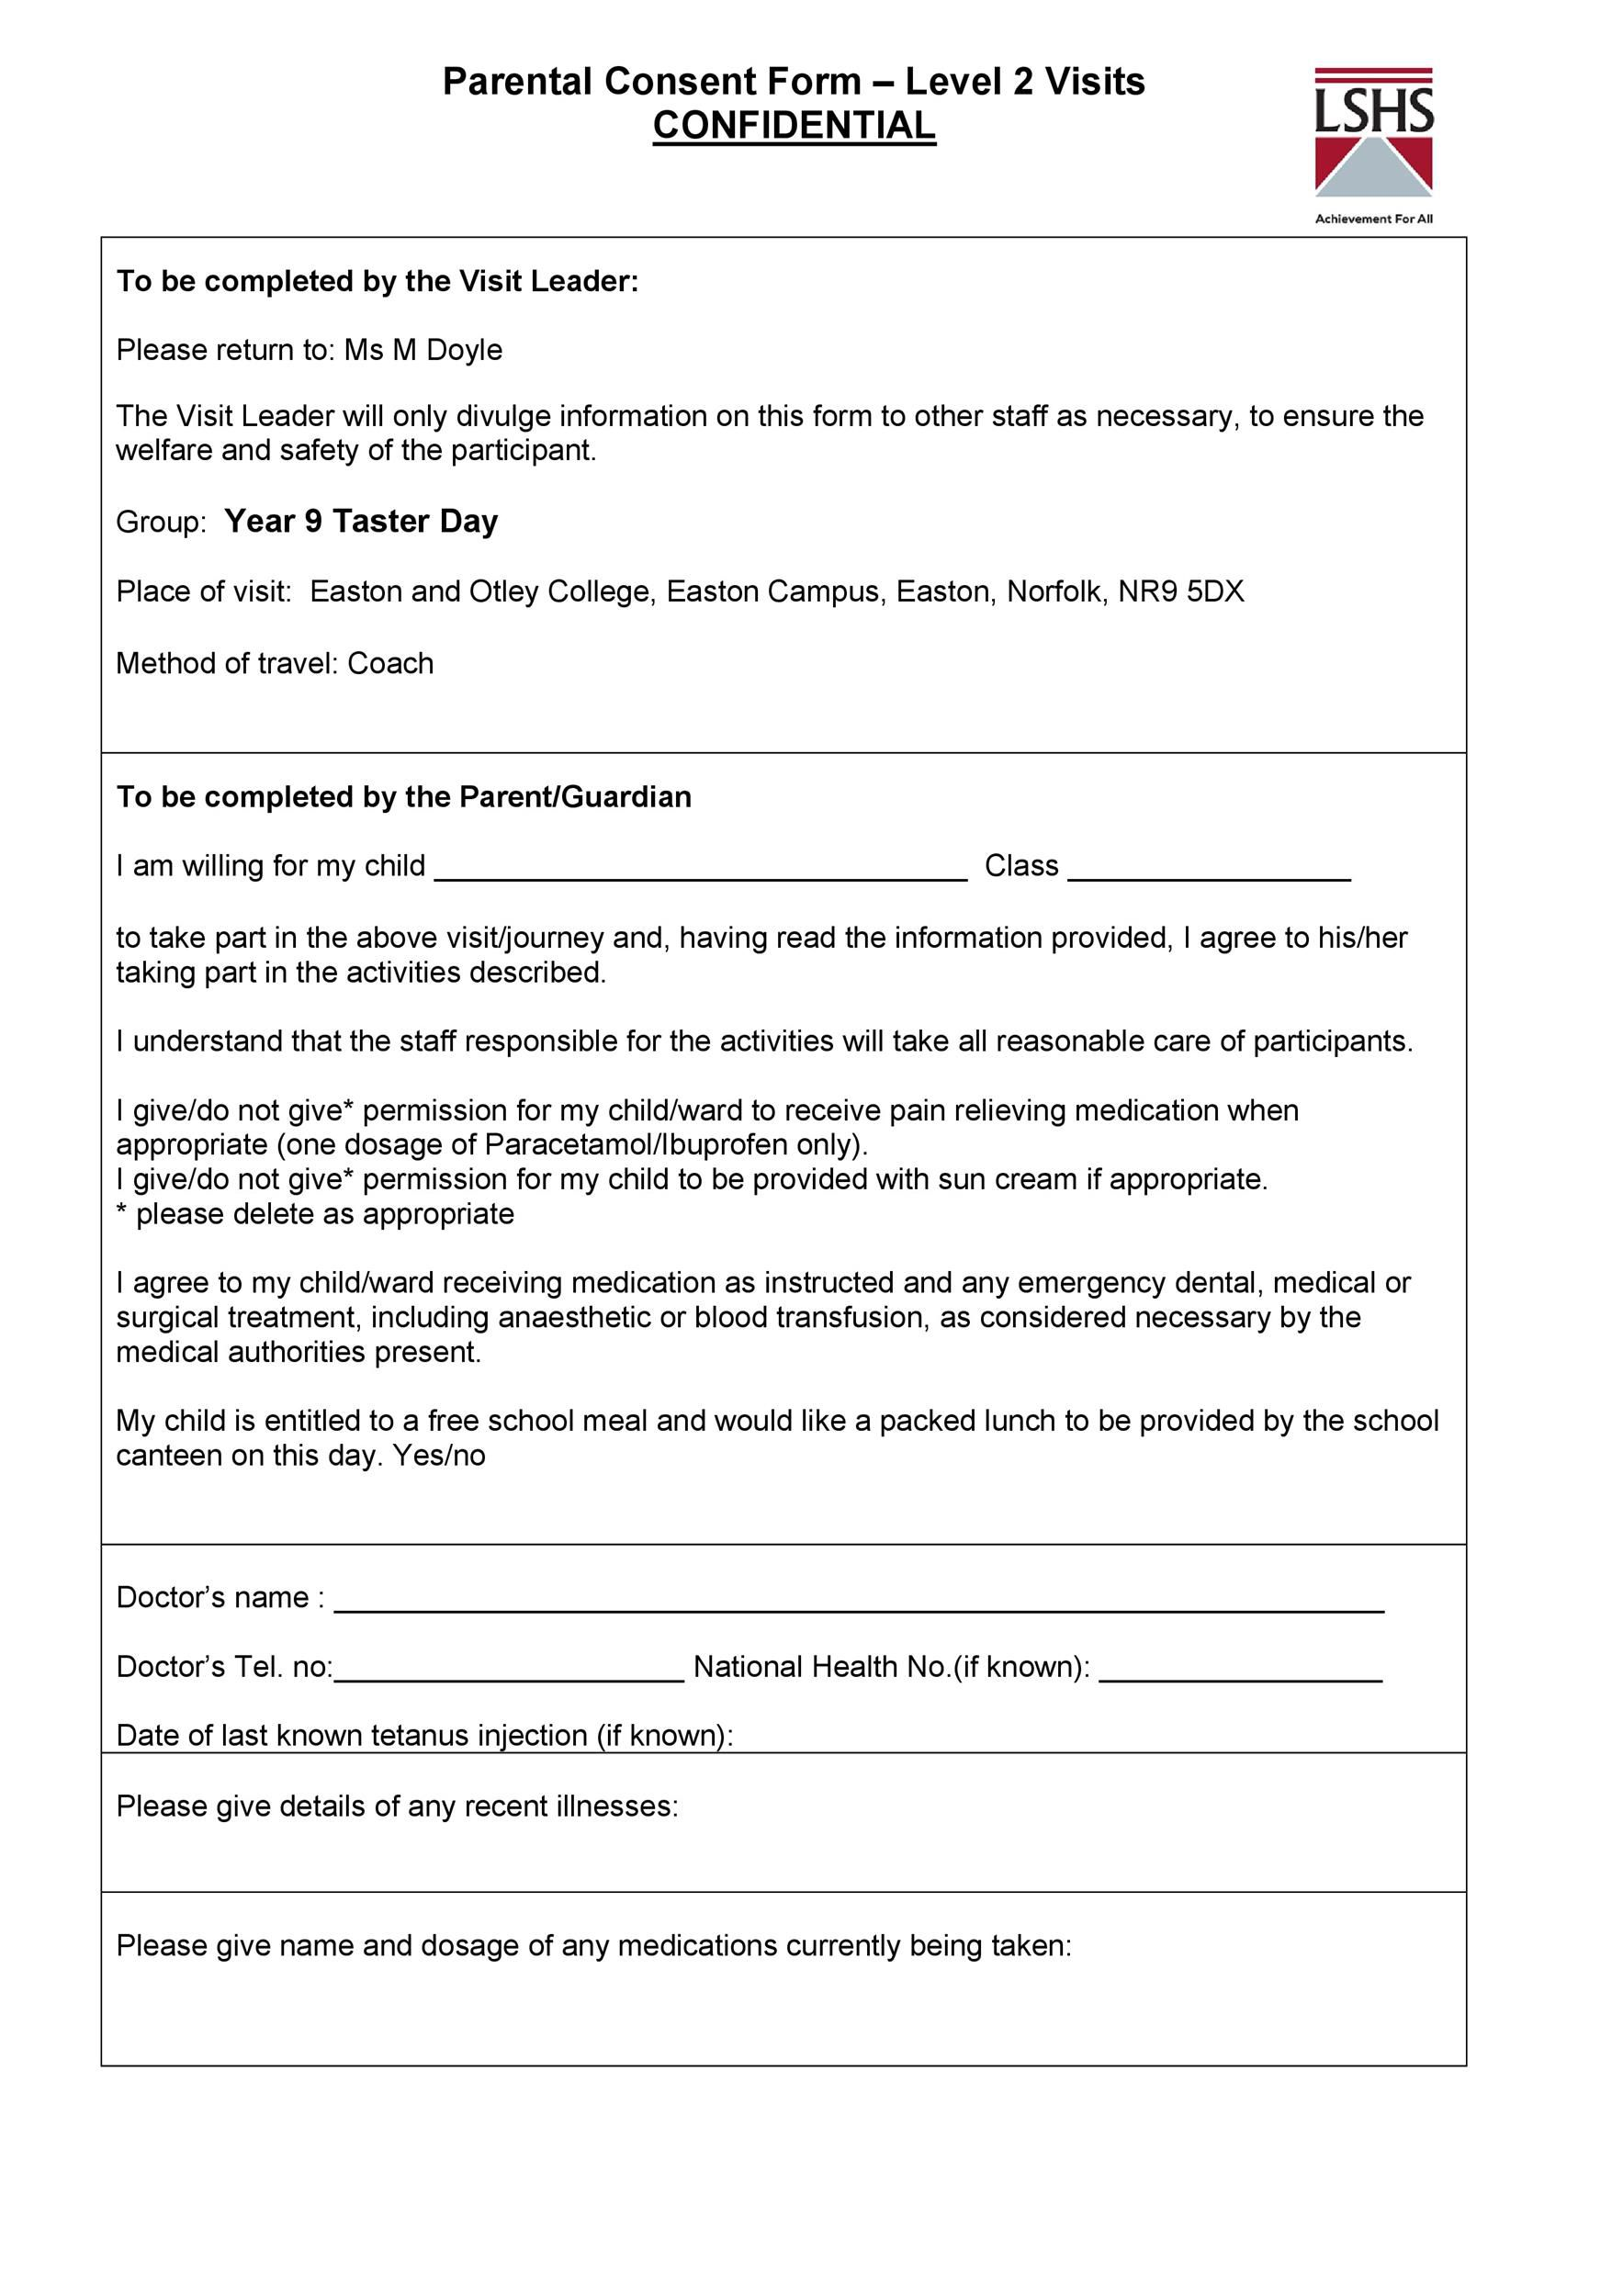 009 Staggering Free Parental Medical Consent Form Template High Definition Full